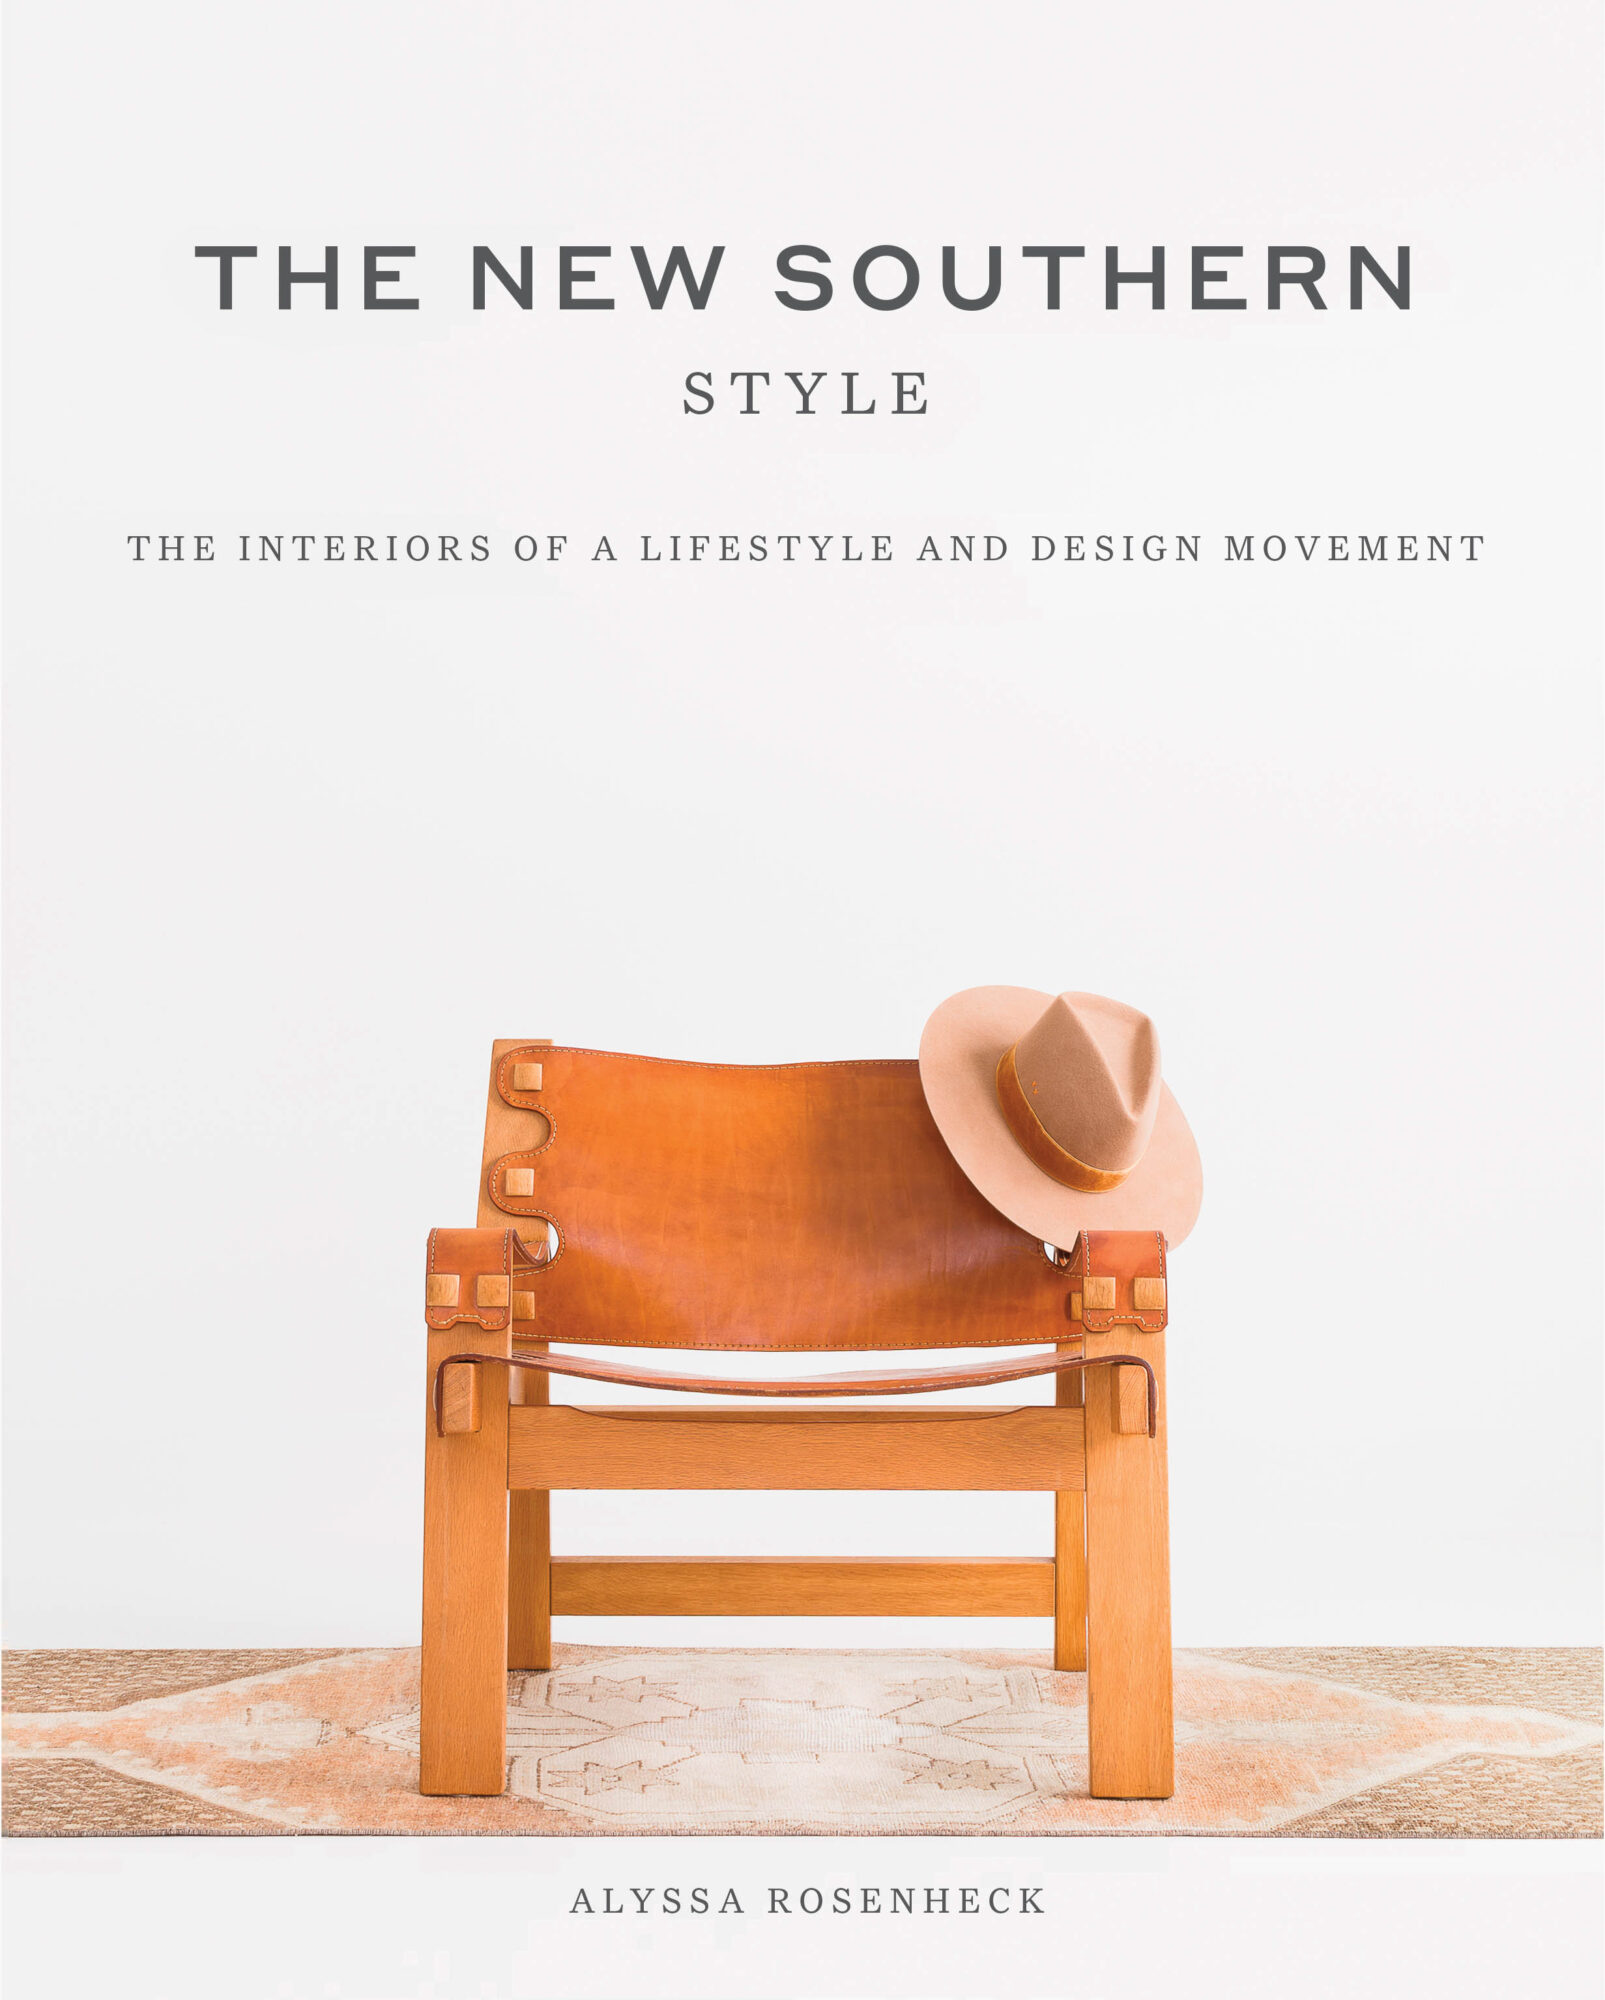 Book cover with leather armchair and cowboy hat